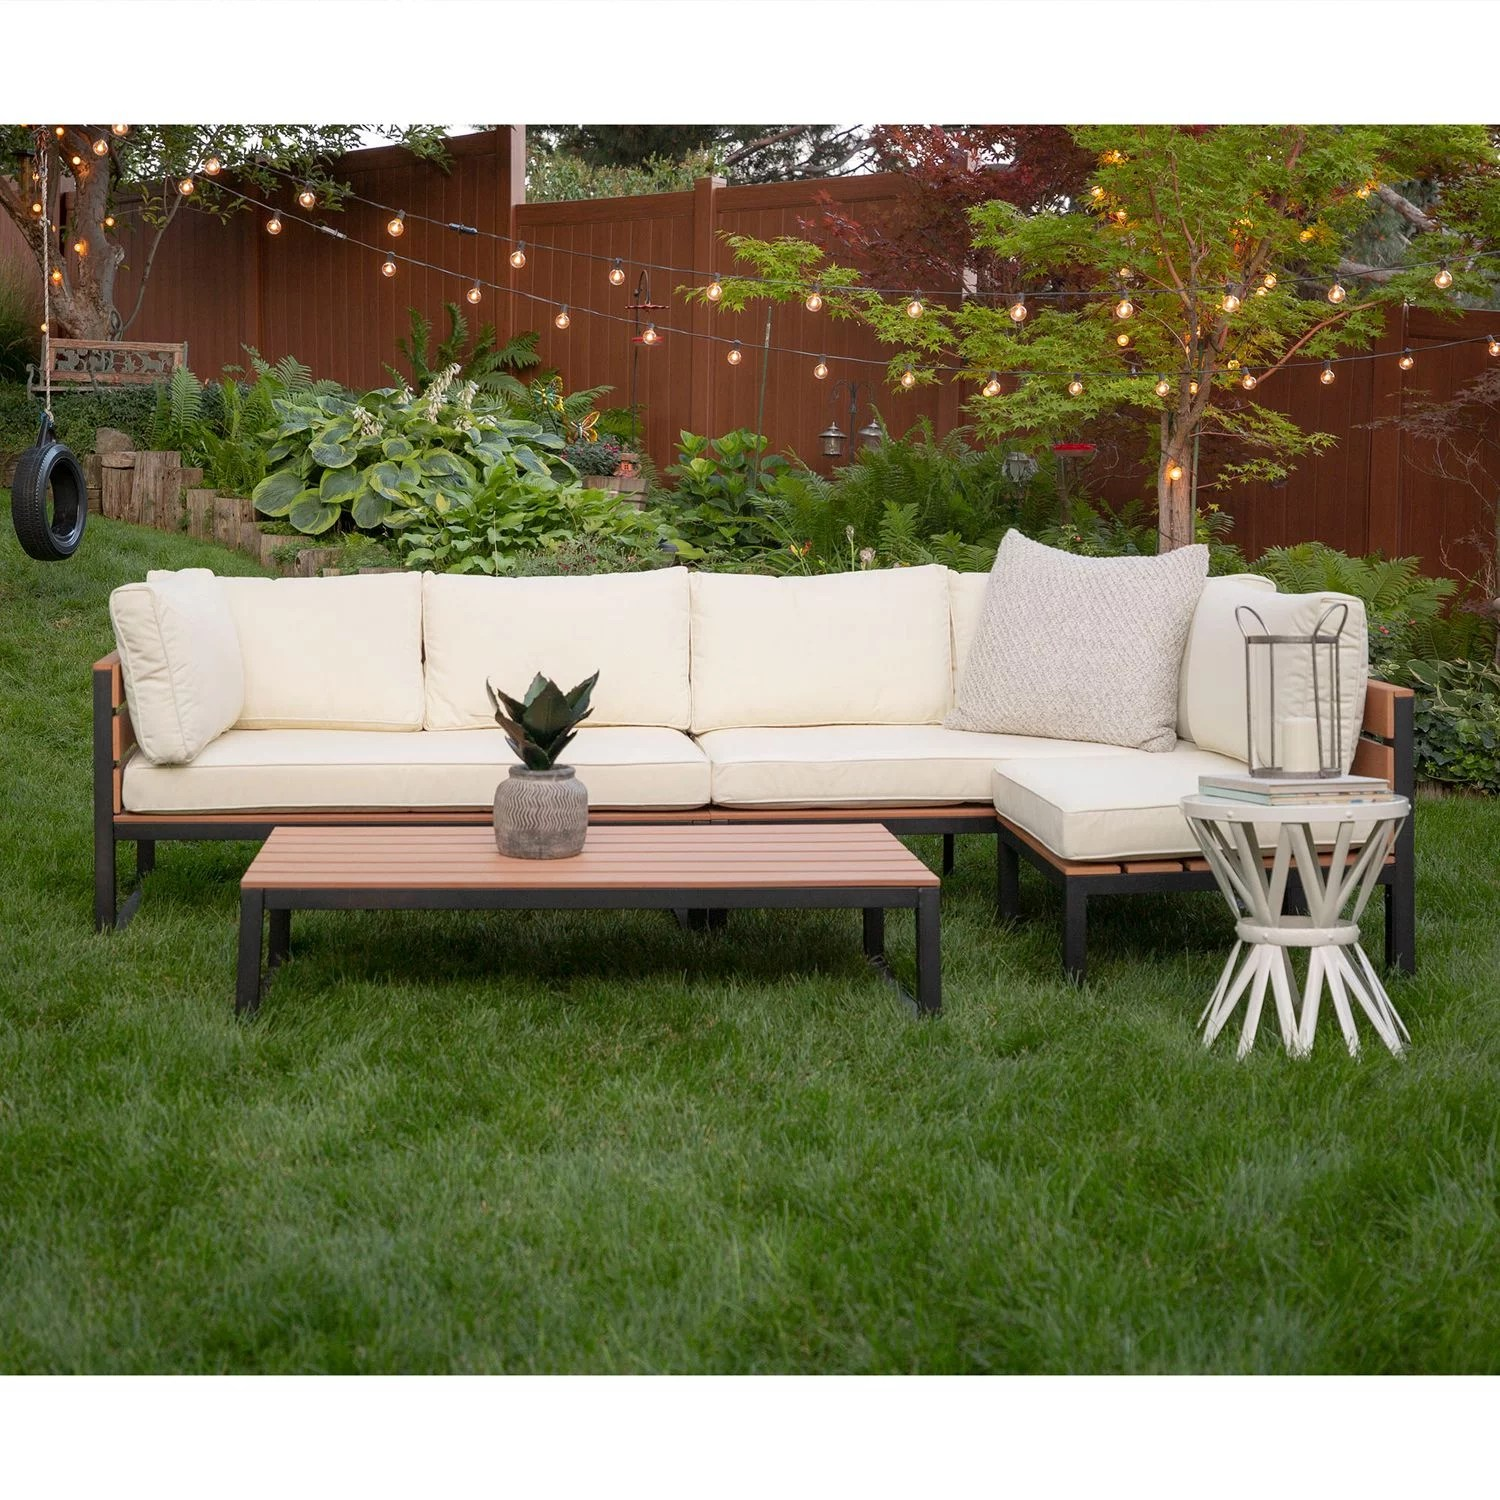 Pier 1 Imports Outdoor Furniture Popsugar Home